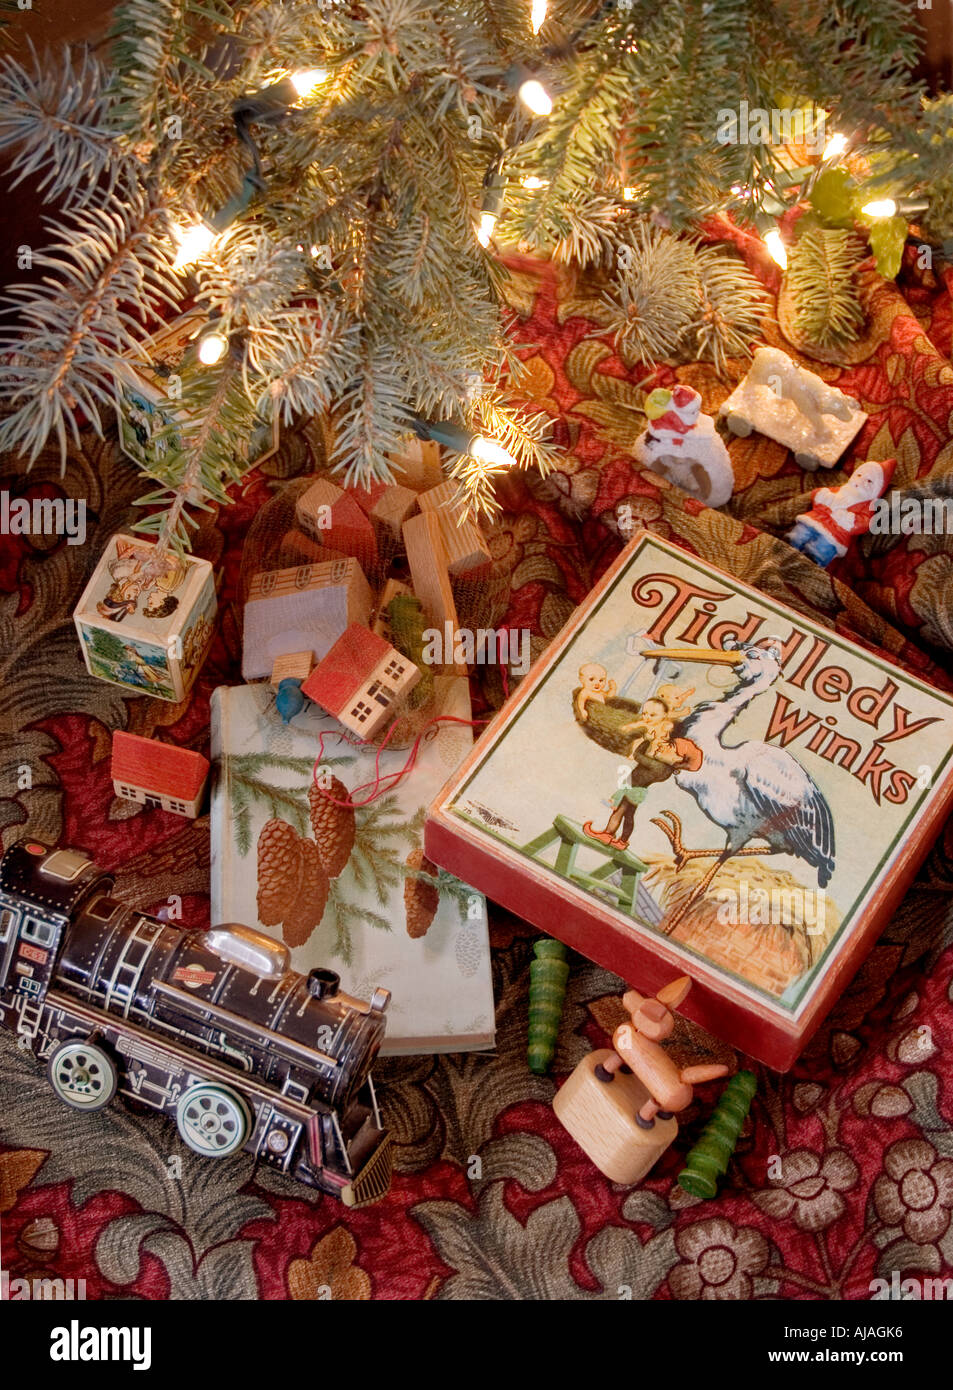 Vintage Toys Under A Christmas Tree With Lights Stock Photo 8386101